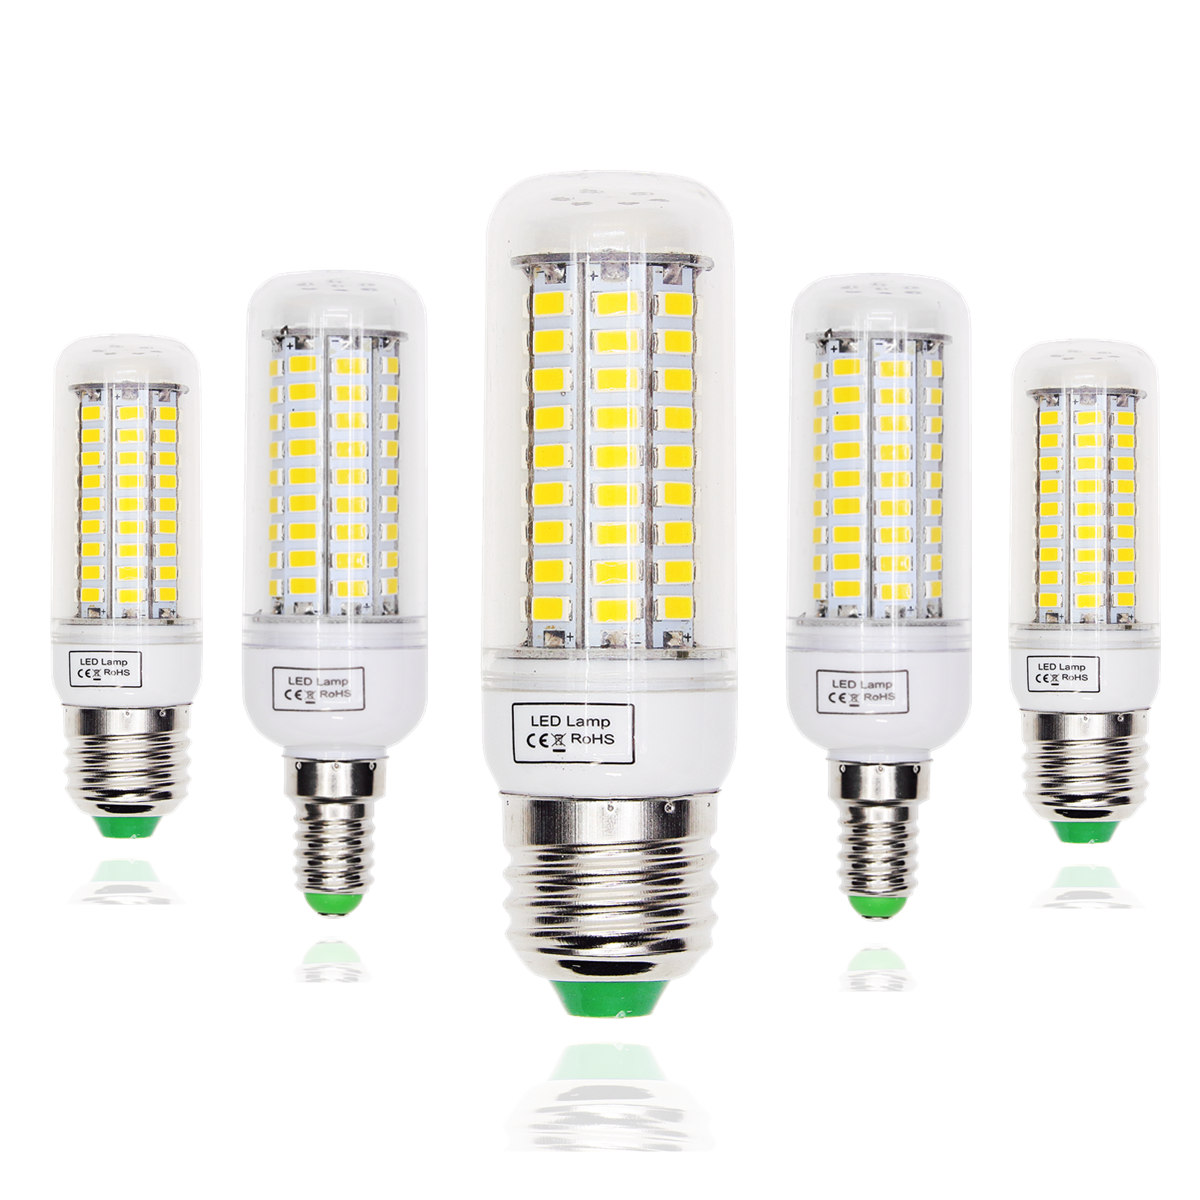 LED Lamp E27 E14 LED Bulb 220V 5730 Corn Light Lampada LED Bulbs Chandelier Candle For Home Decoration Replace filament Light led bulbs light lamps e27 e14 5730 220v 24 36 48 56 69leds led corn led bulb christmas lampada led chandelier candle lighting